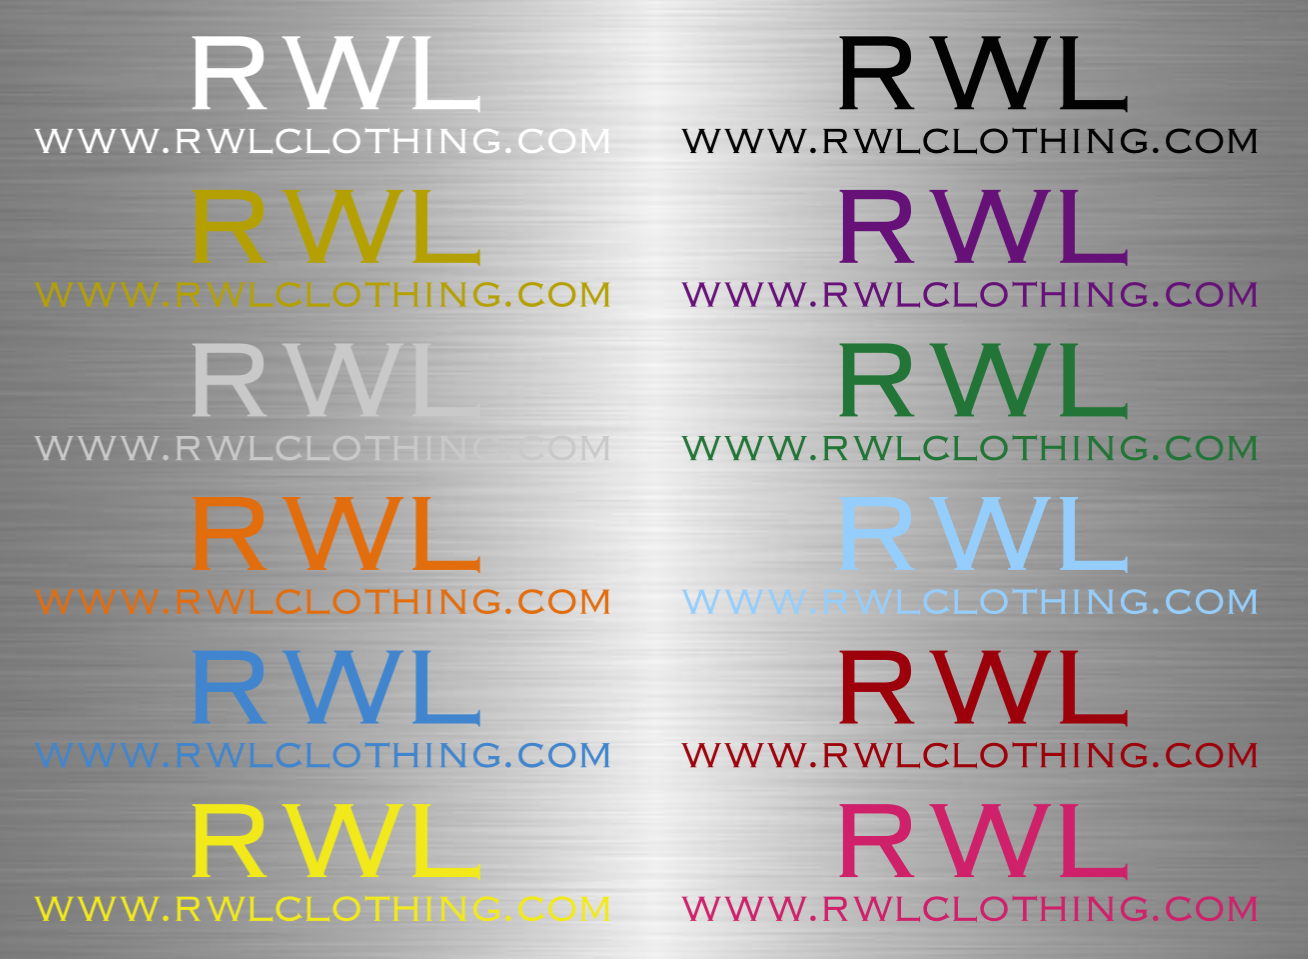 RWL URL Logo Vinyl Decal